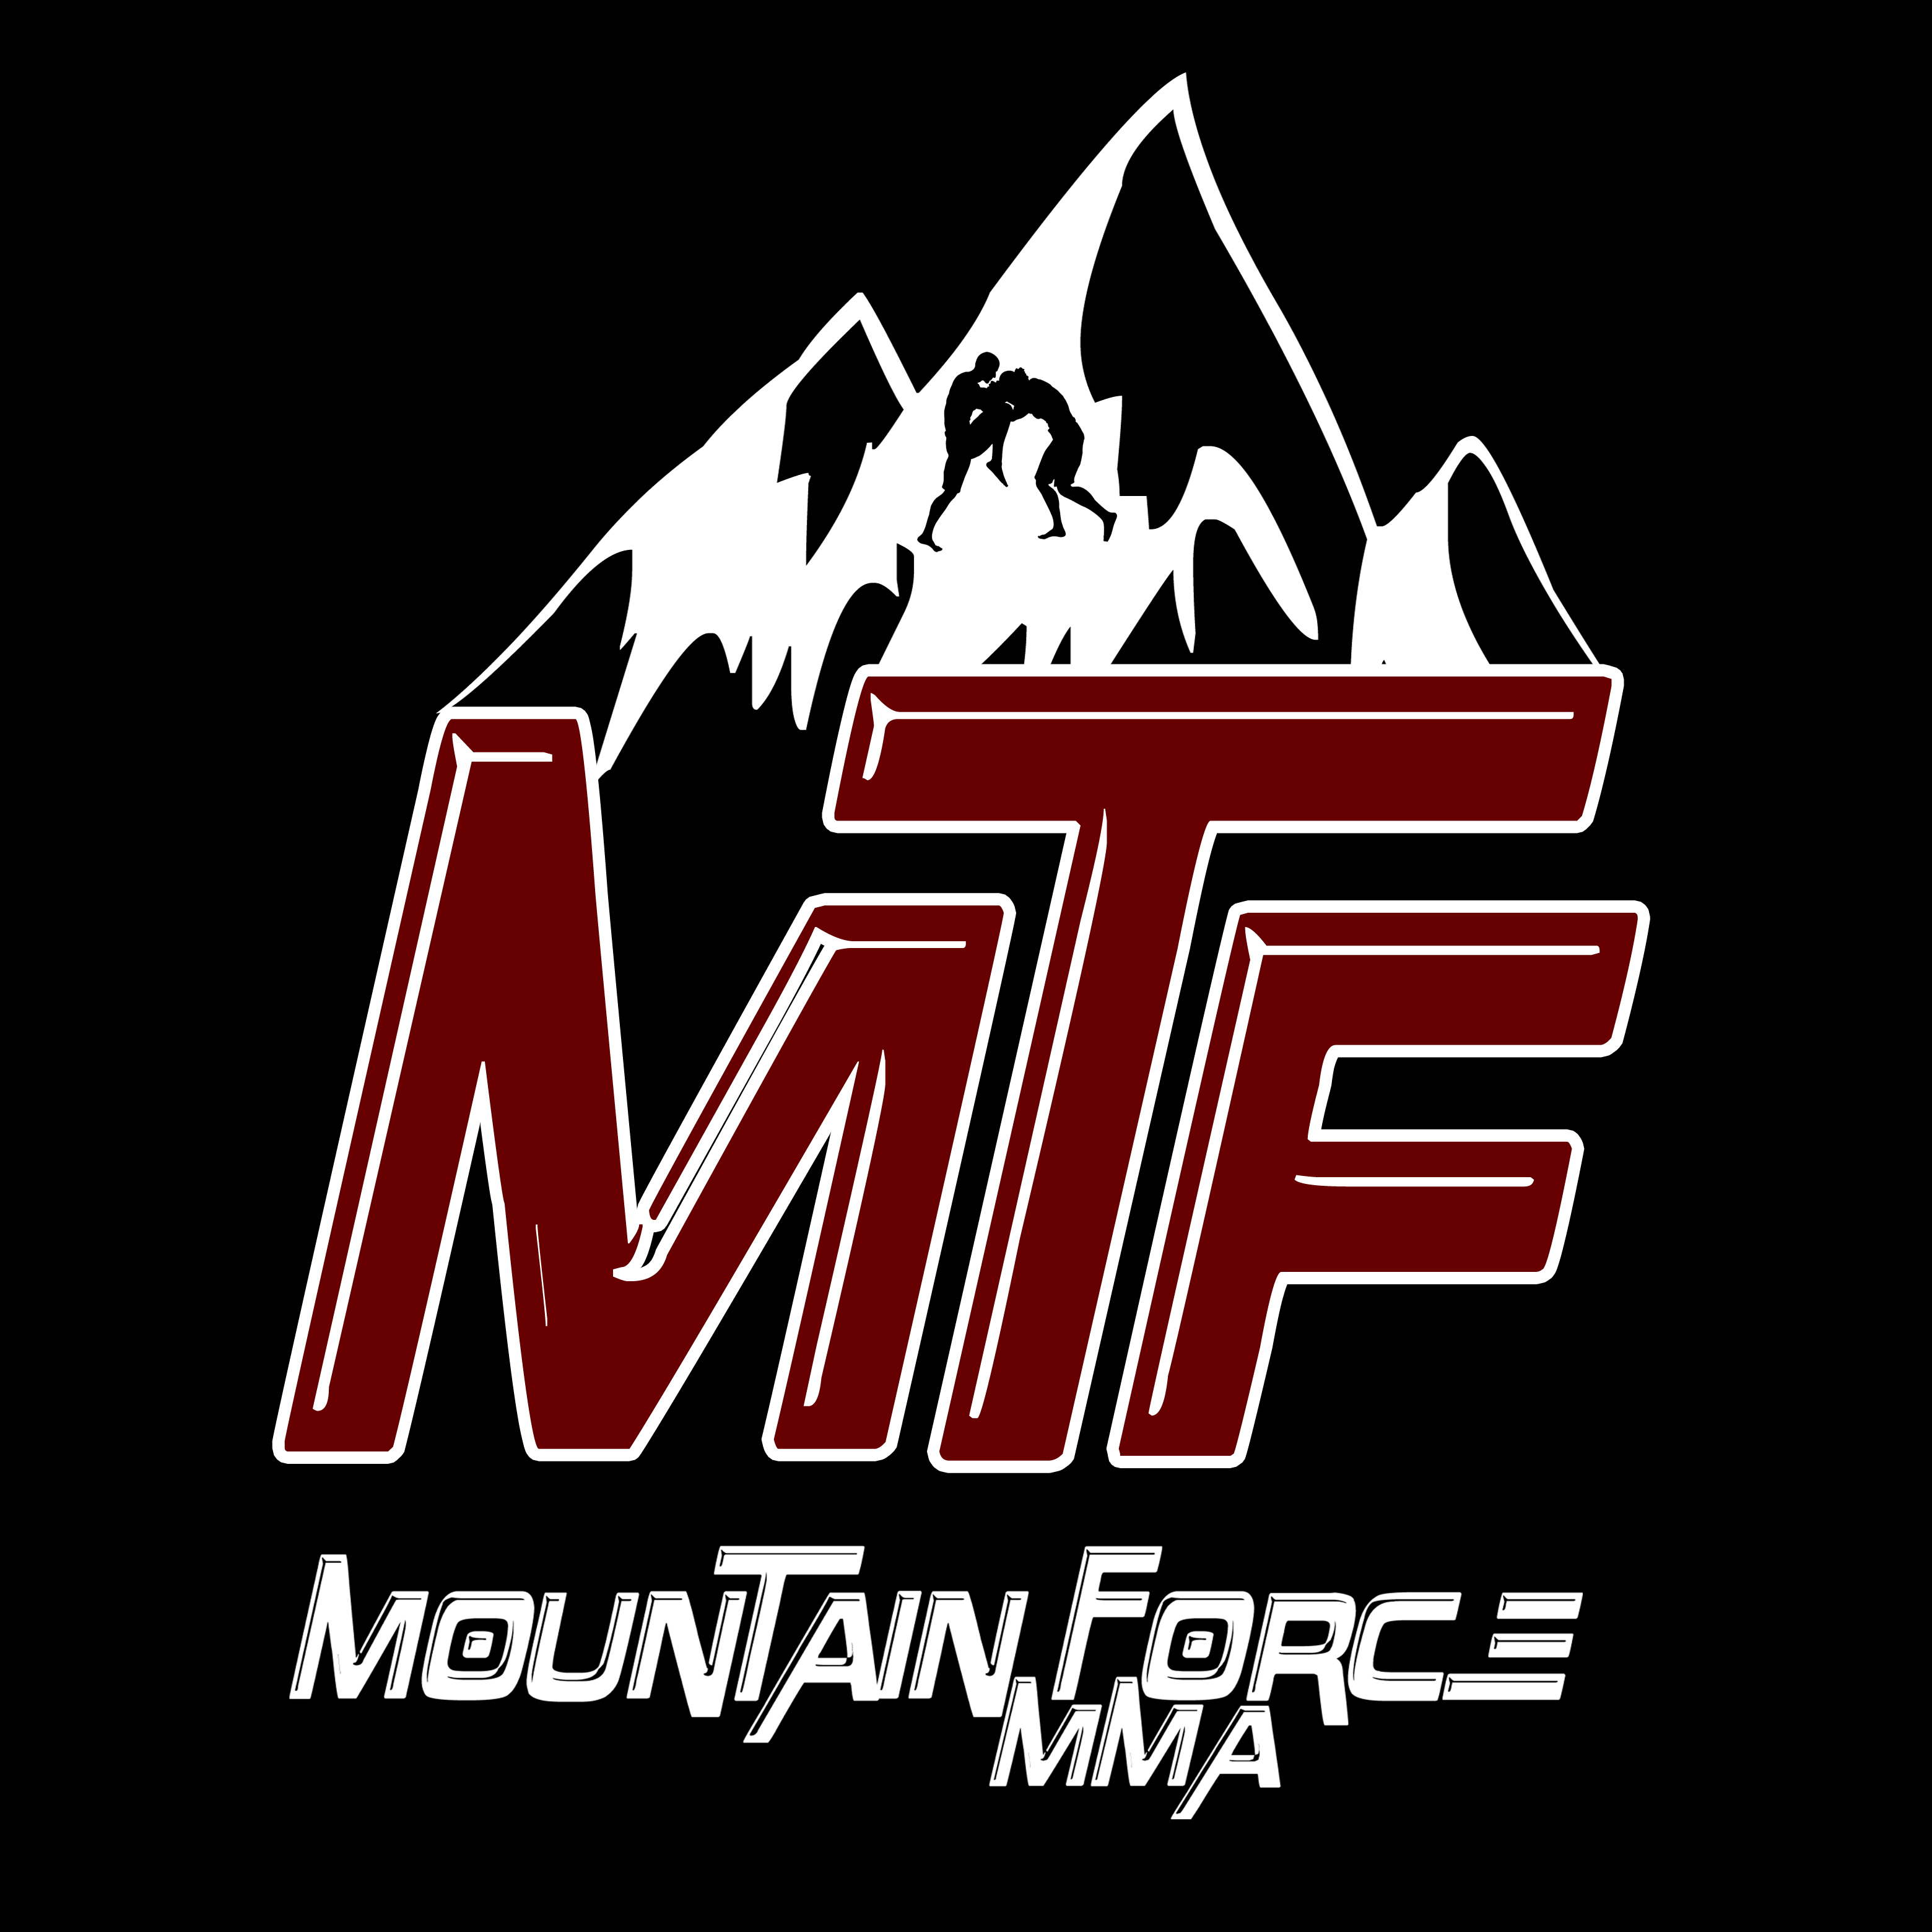 MOUNTAIN FORCE LOGO 5 copy